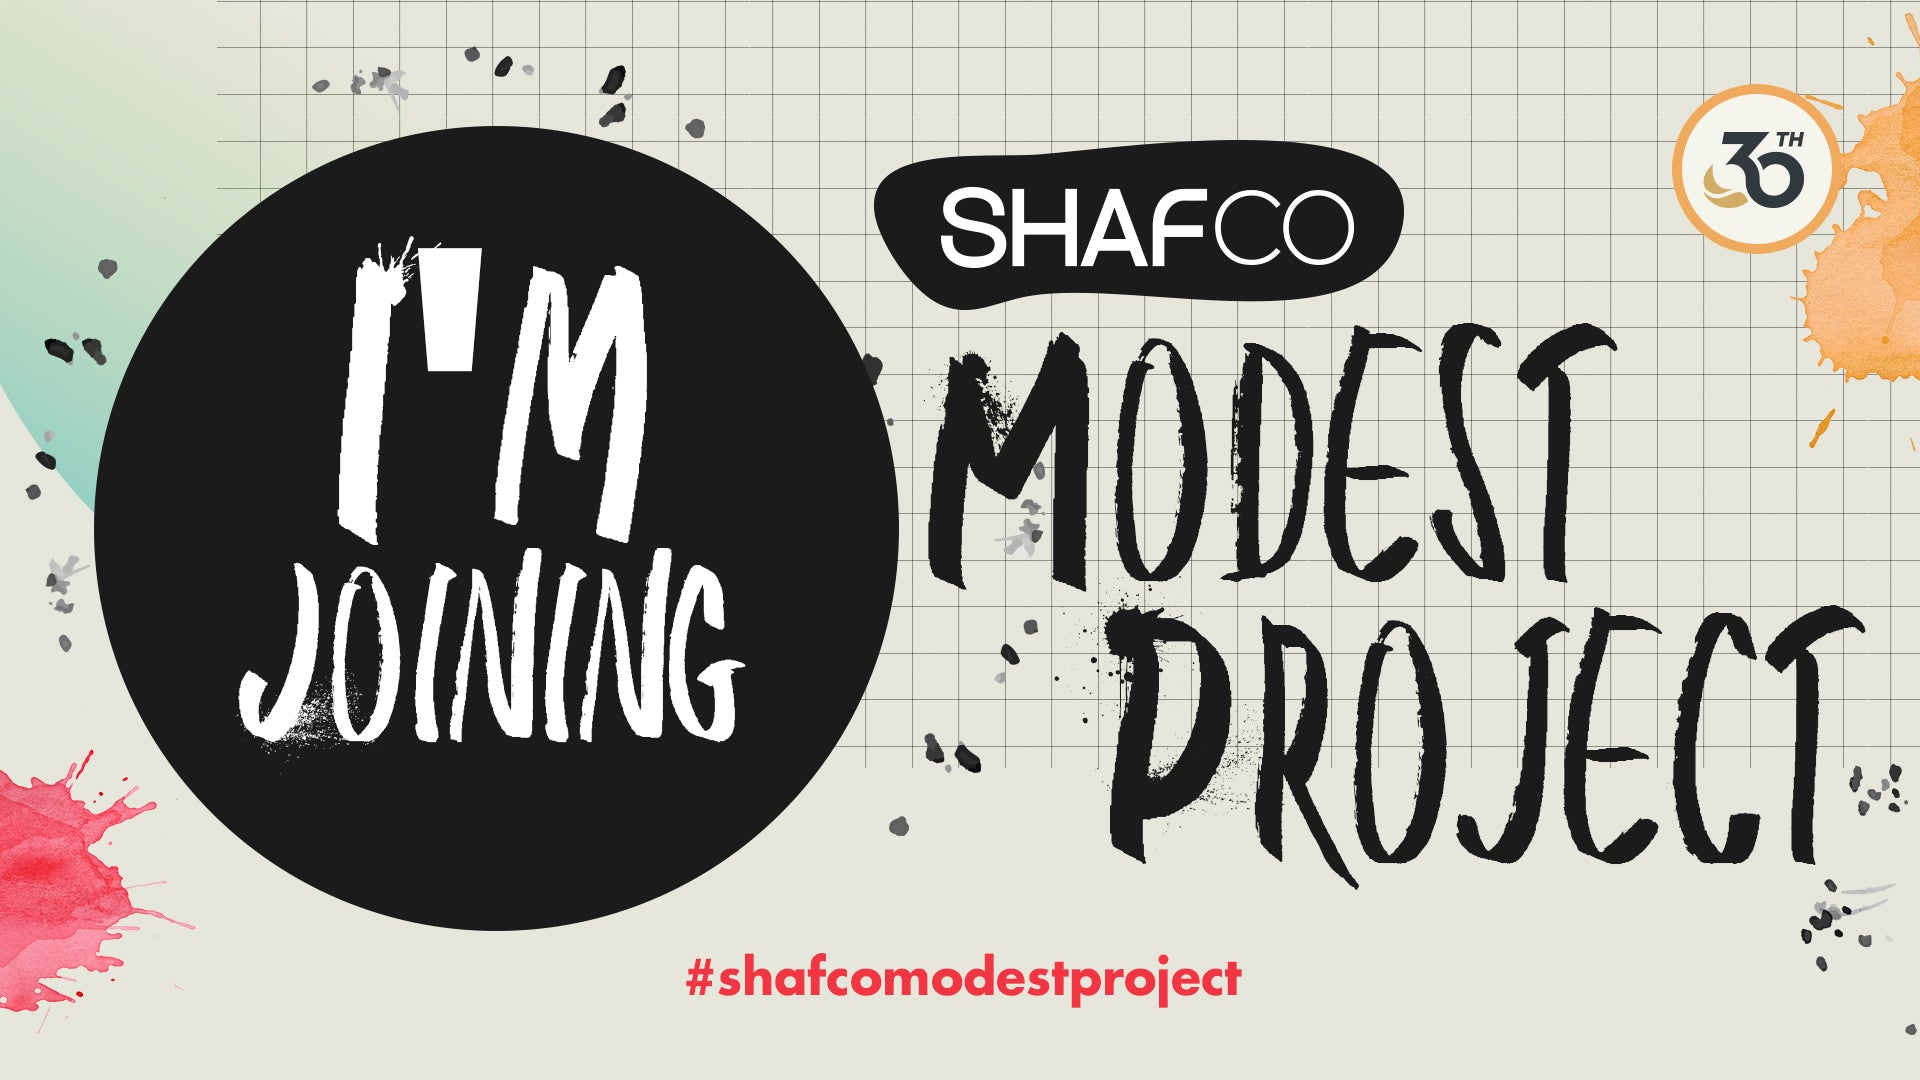 Template SHAFCO Modest Project